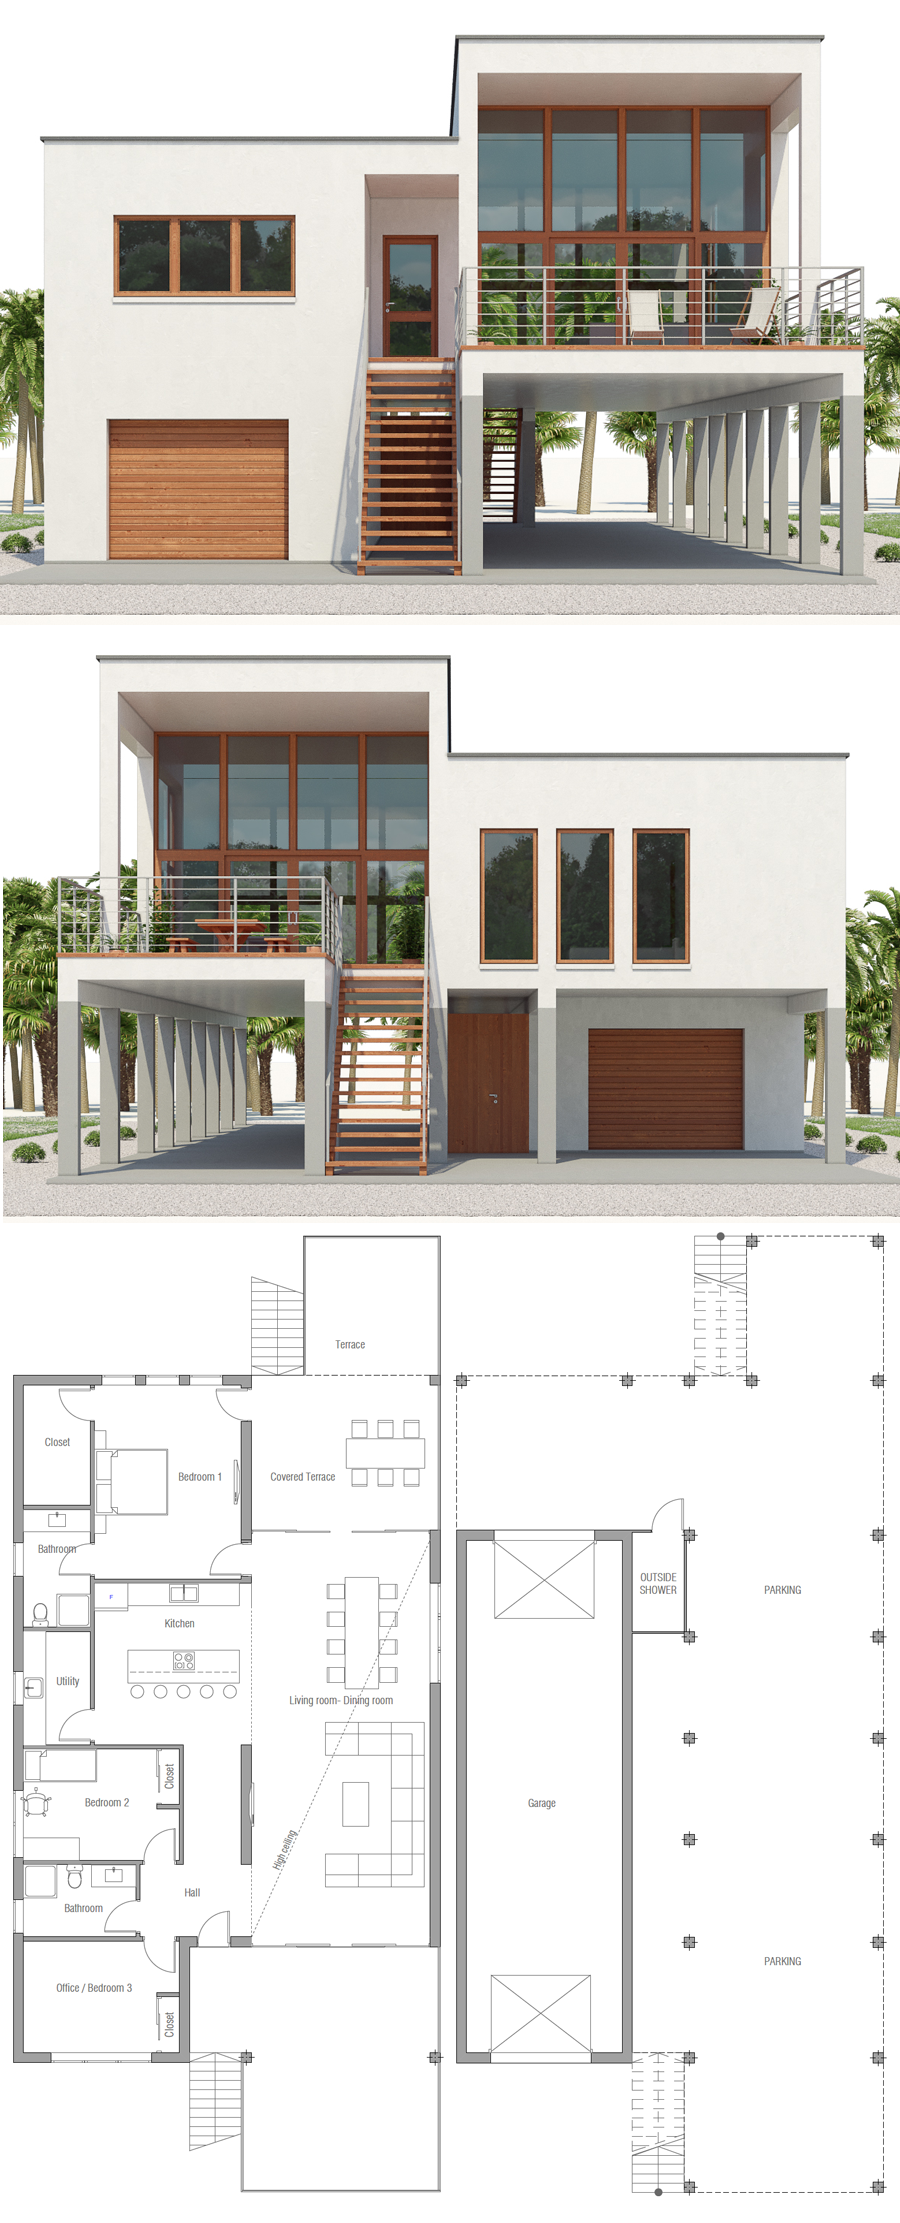 Beach Home Designs on art designs, beach architecture design, beach house, beach kit homes, bedroom designs, minimal designs, beach luxury homes, beach homes in florida keys, beach wall design, contemporary house plans and designs, sexy background designs, beach side homes, diy designs, photography designs,